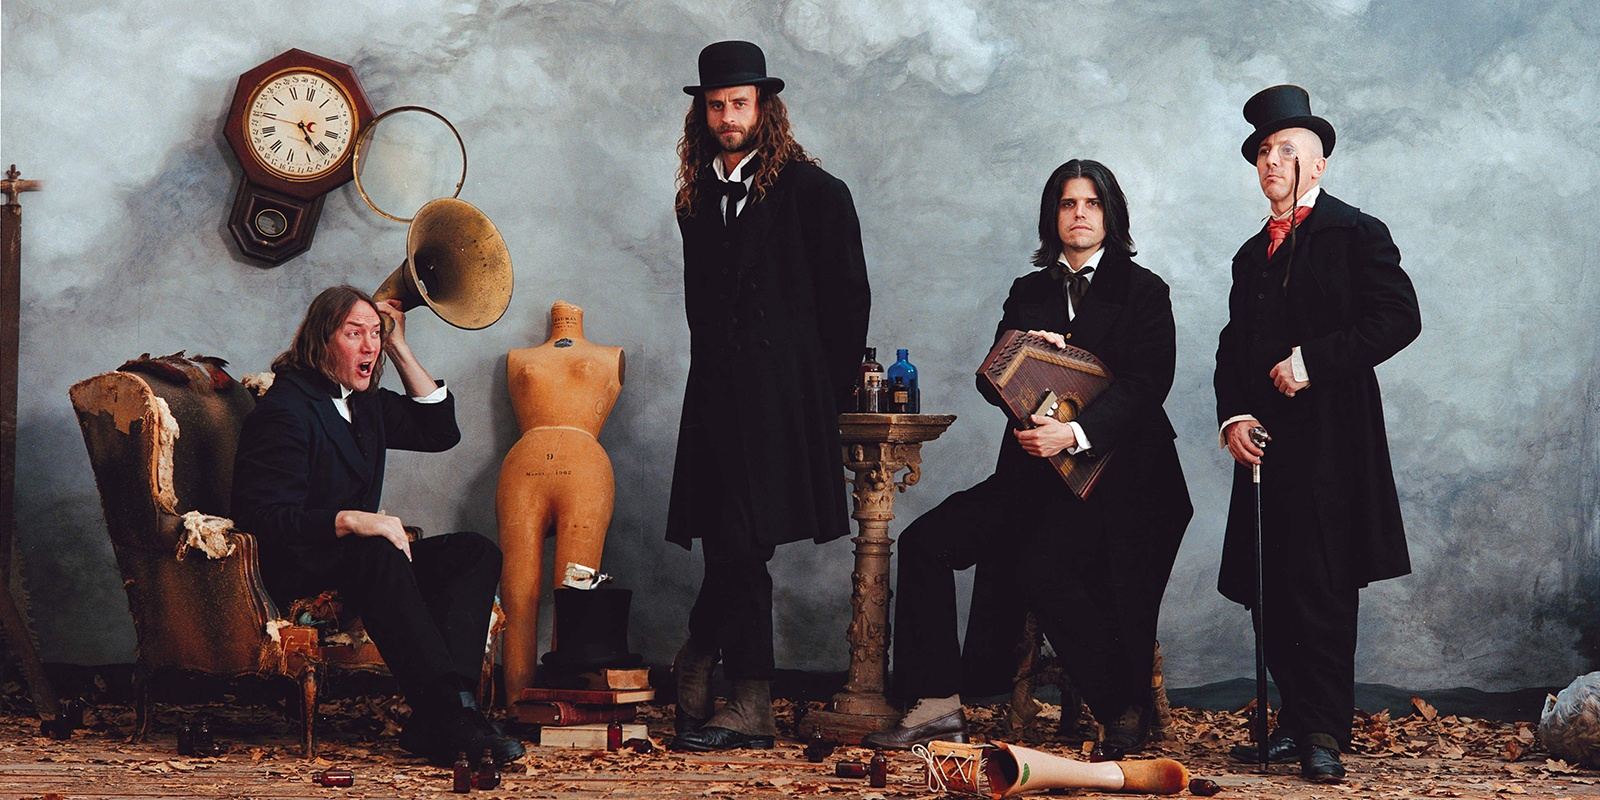 TOOL's first album in 13 years is finally complete